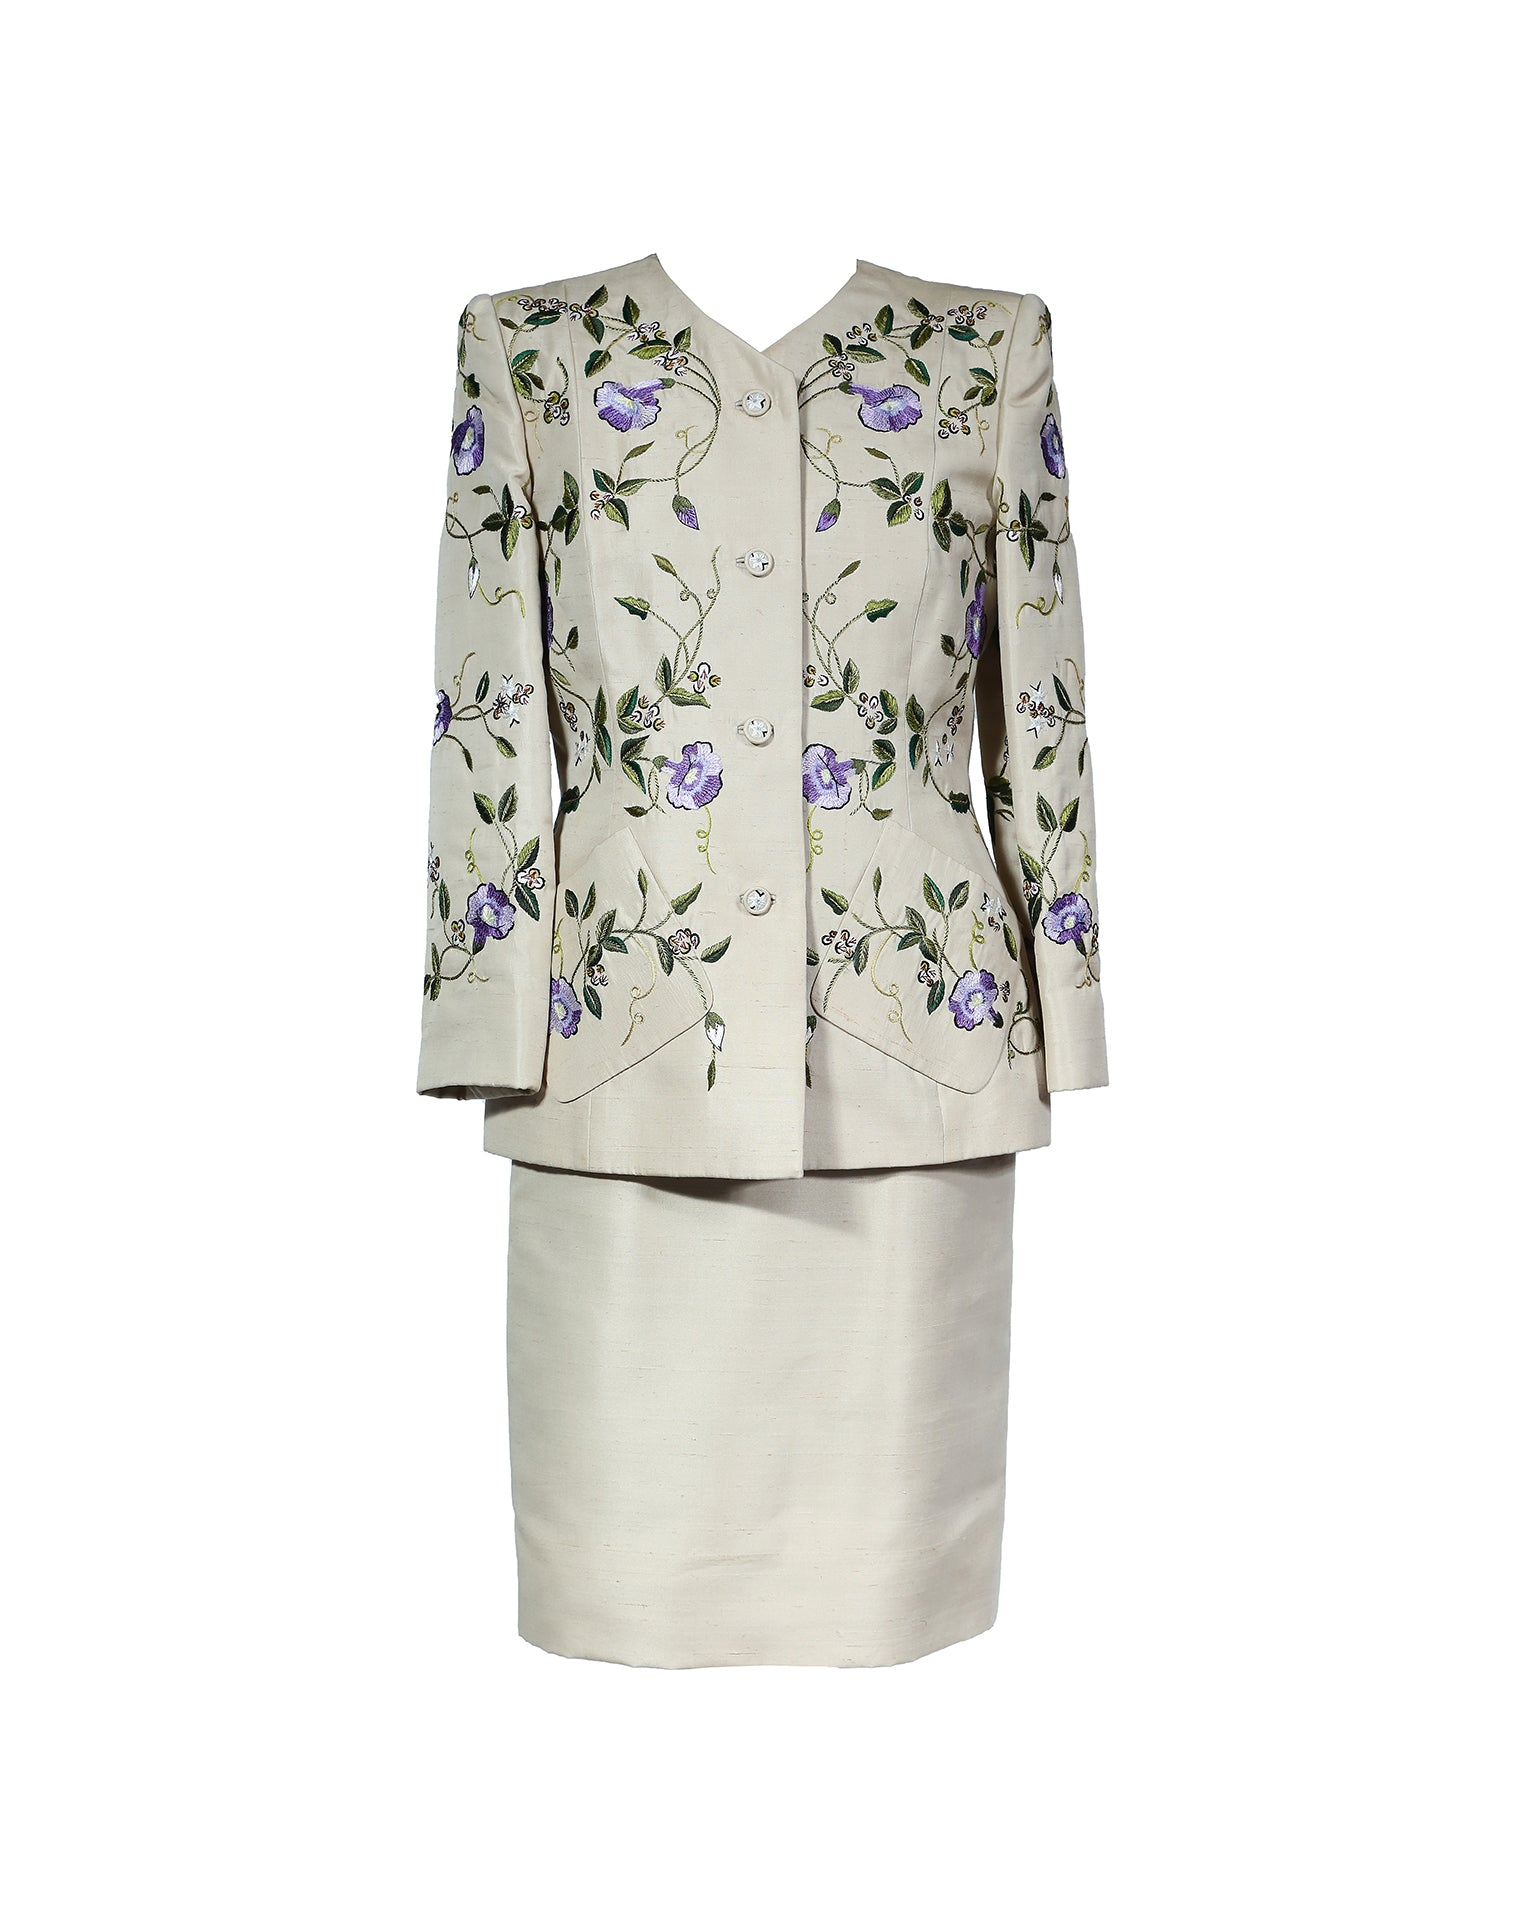 Oscar De La Renta Embelished Skirt and Coat Set Size 38 (EU)